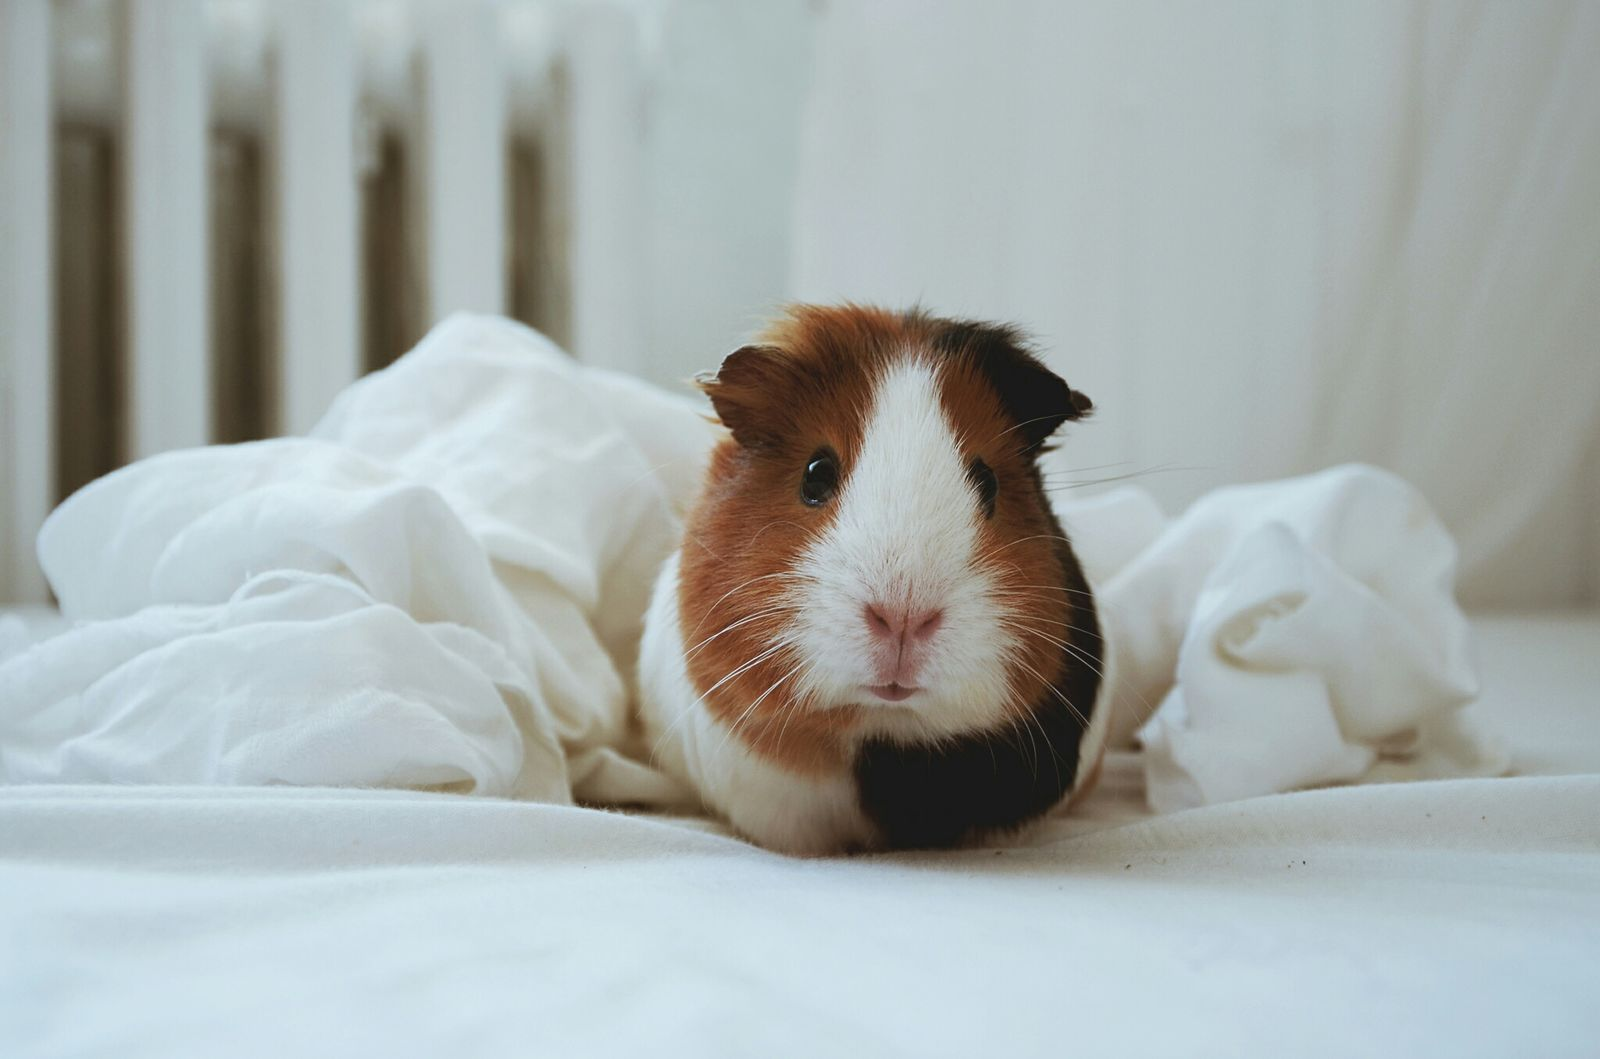 She's so old but looks so young Eat Veggie Guinea Pig